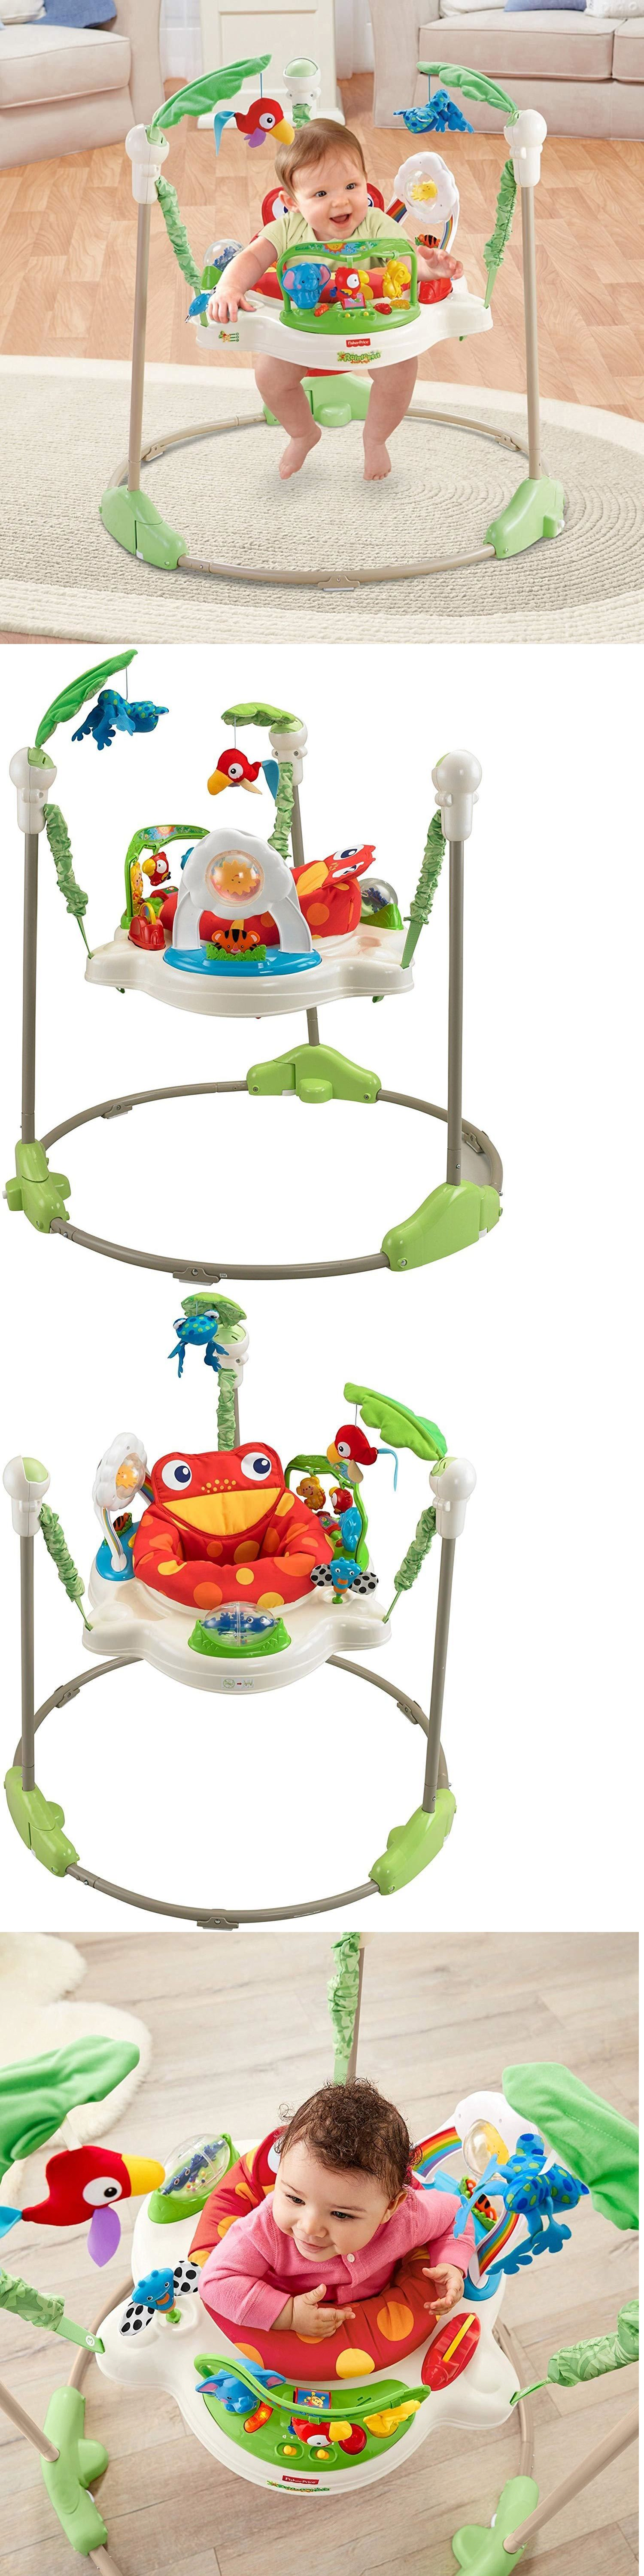 Baby Jumping Exercisers 117032 Fisher Price Rainforest Jumperoo Baby Jumper Walker Bouncer A Fisher Price Rainforest Jumperoo Baby Activity Jumper Baby Jumper